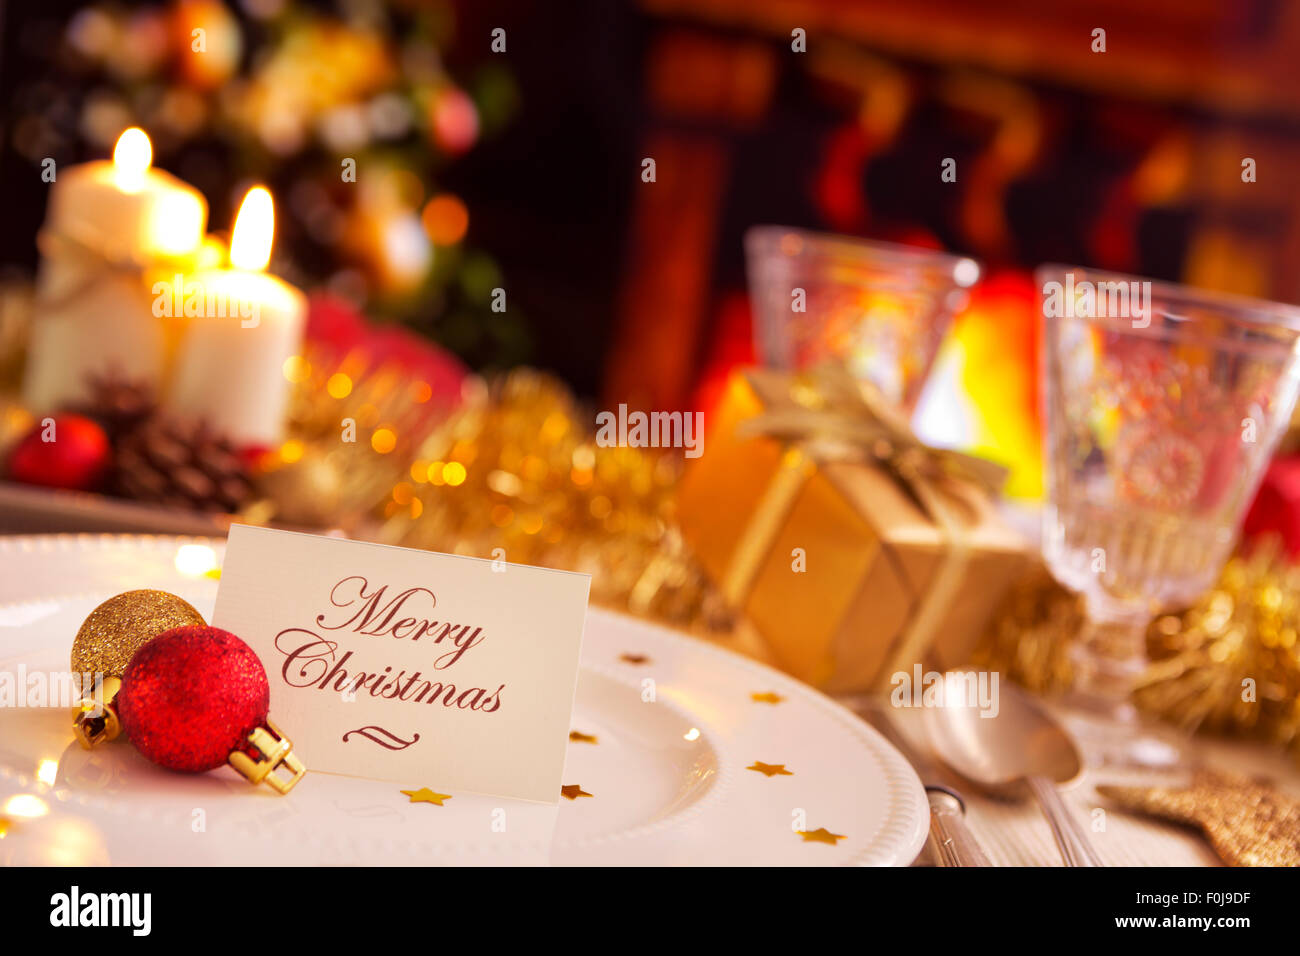 Romantic dinner table decoration - A Romantic Christmas Dinner Table Setting With Candles And Christmas Decorations On The Plate A Note With The Words Merry Chri